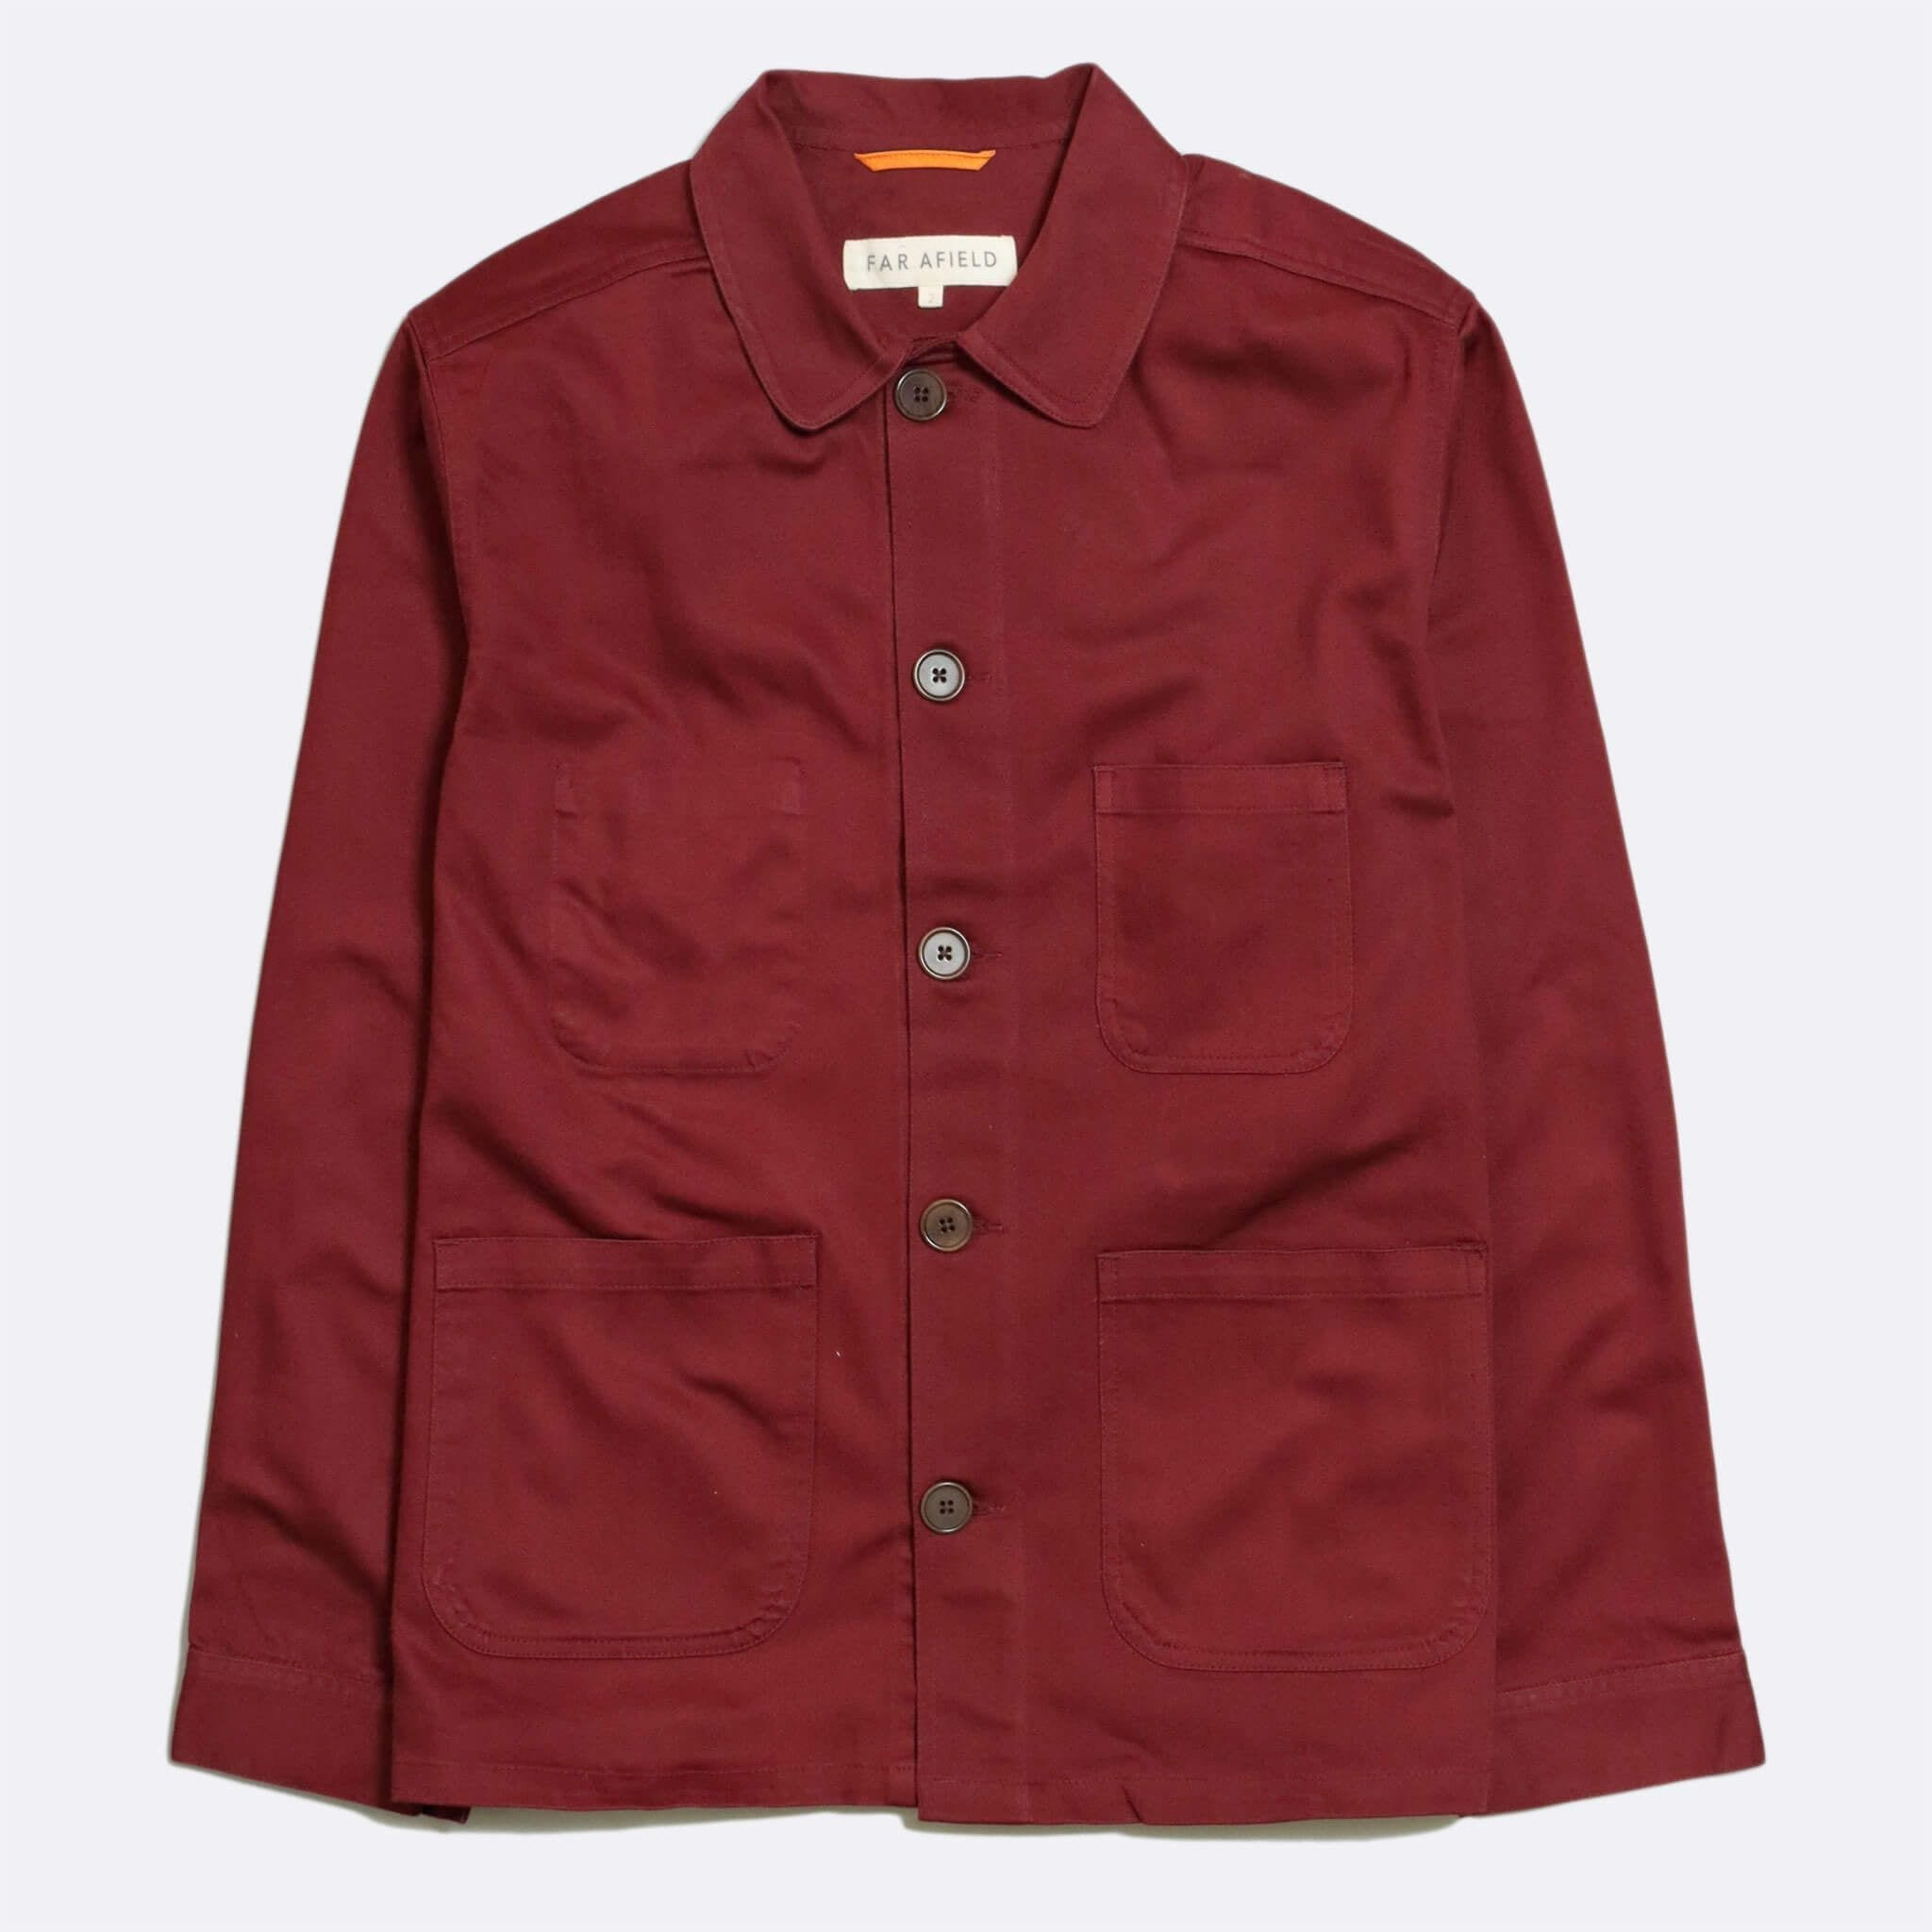 Far Afield Flap Pocket Pop Over Long Sleeve Shirt a Ecru Organic Cotton Corduroy Fabric Classic Menswear Smart Casual 6